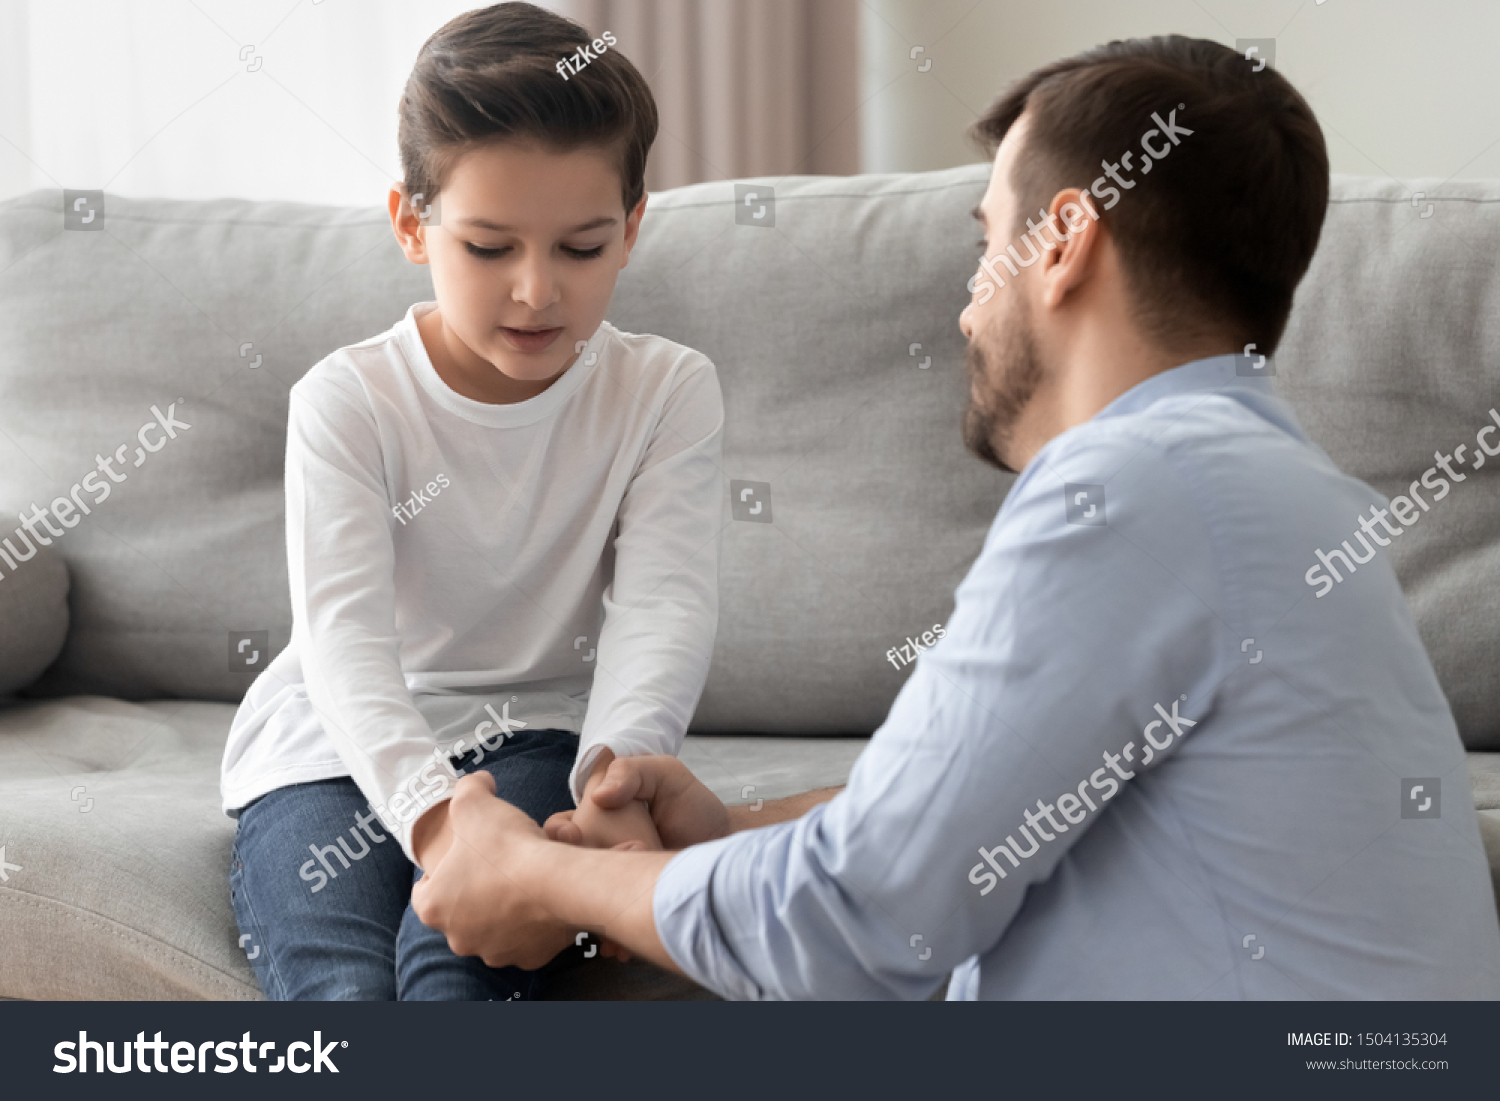 Worried loving young single father holding hand talking comforting upset little kid son sharing helping with problem, caring dad foster parent give support apologizing supporting listening child boy #1504135304